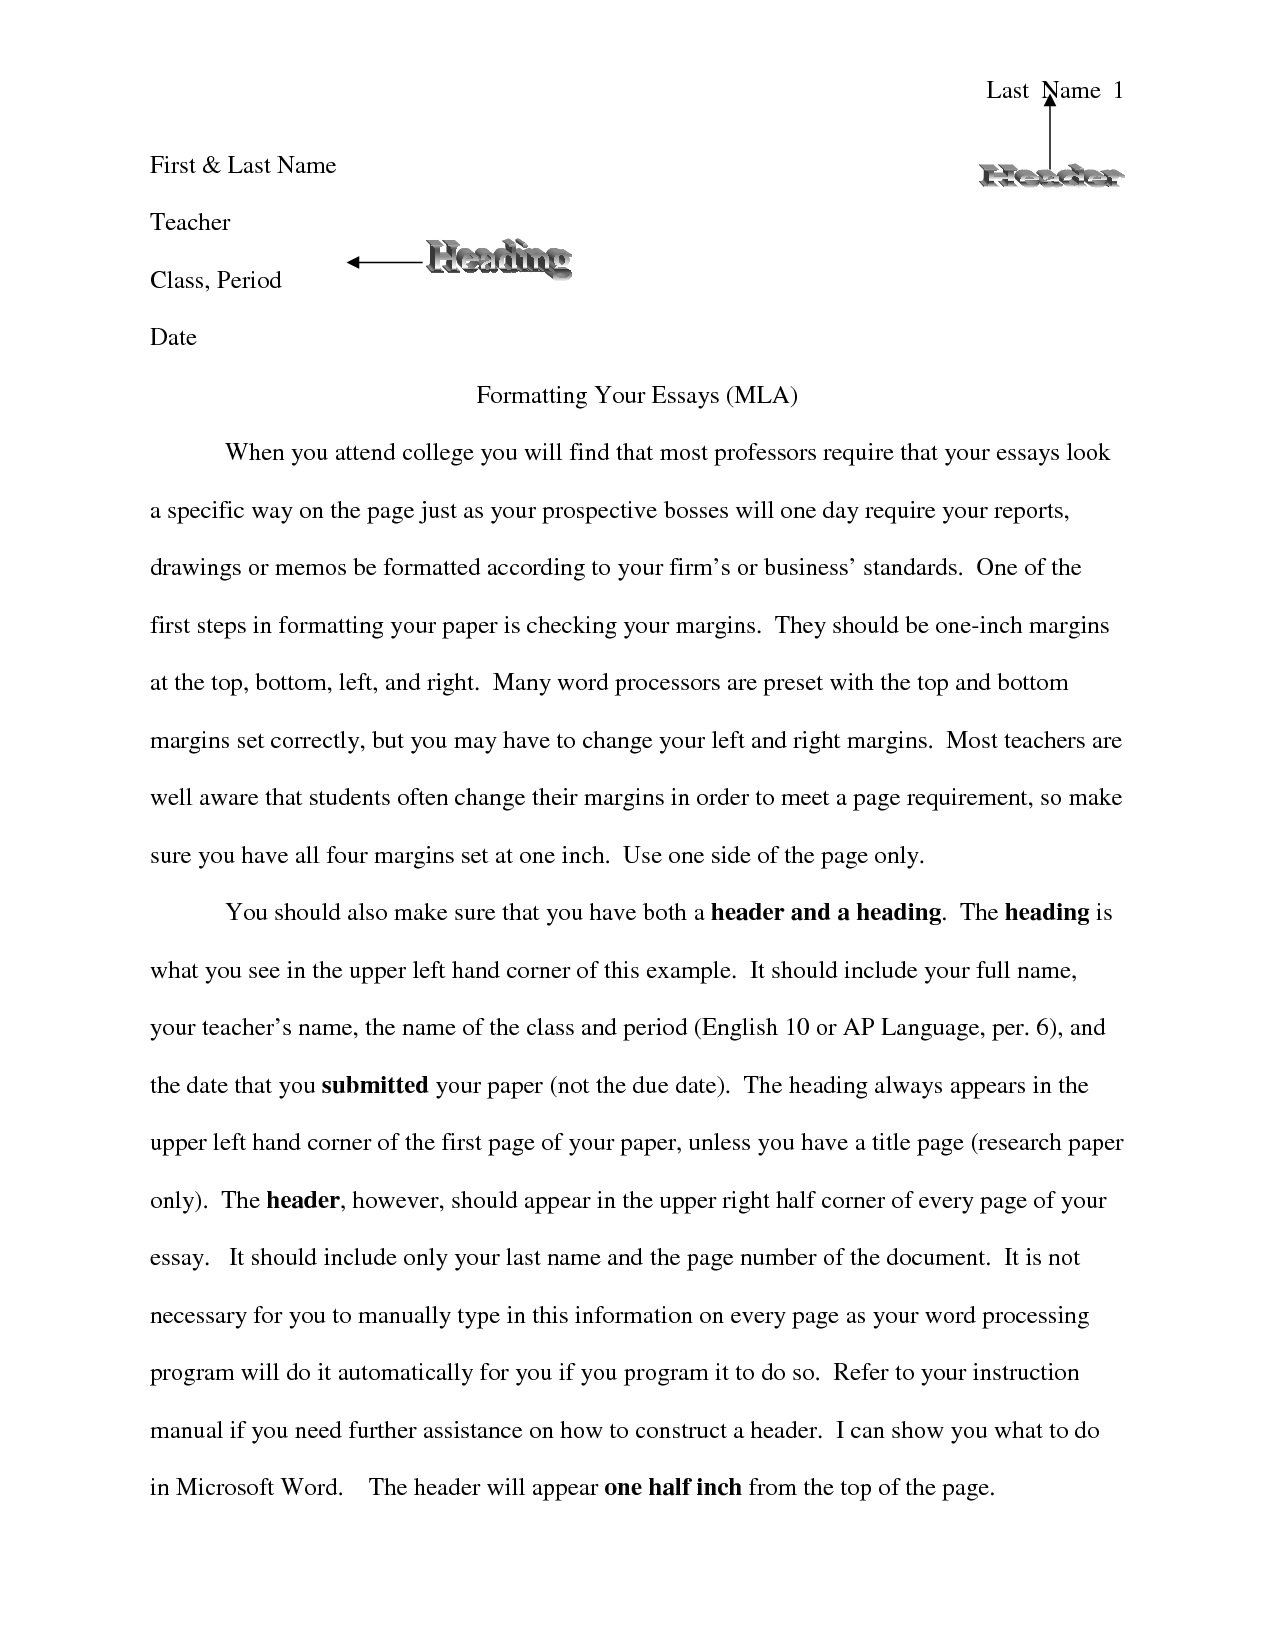 Rules writing college admissions essay